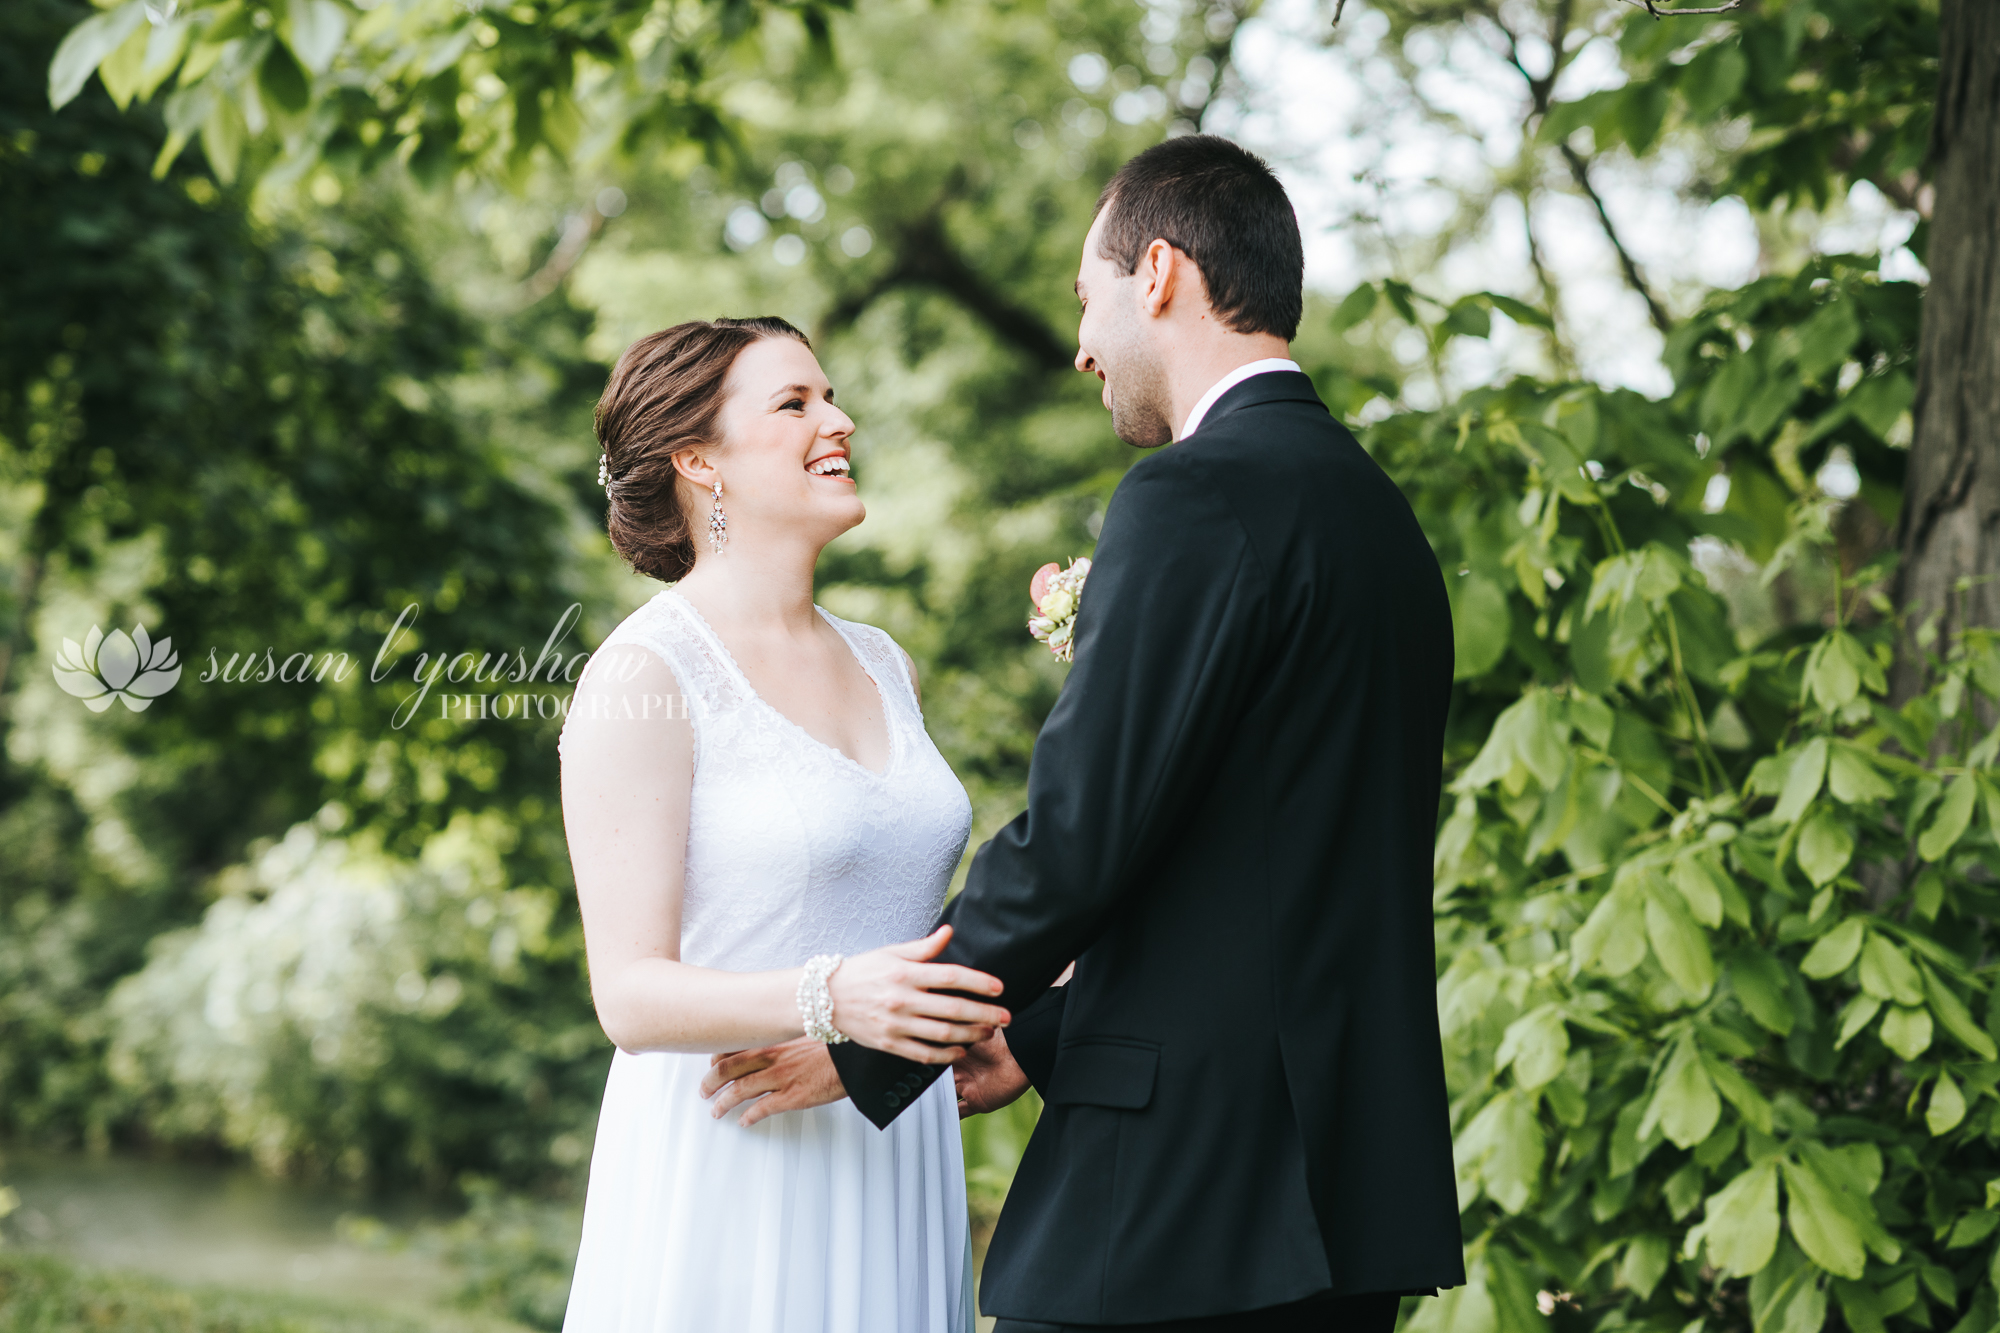 Adena and  Erik Wedding 05-17-2019 SLY Photography-19.jpg